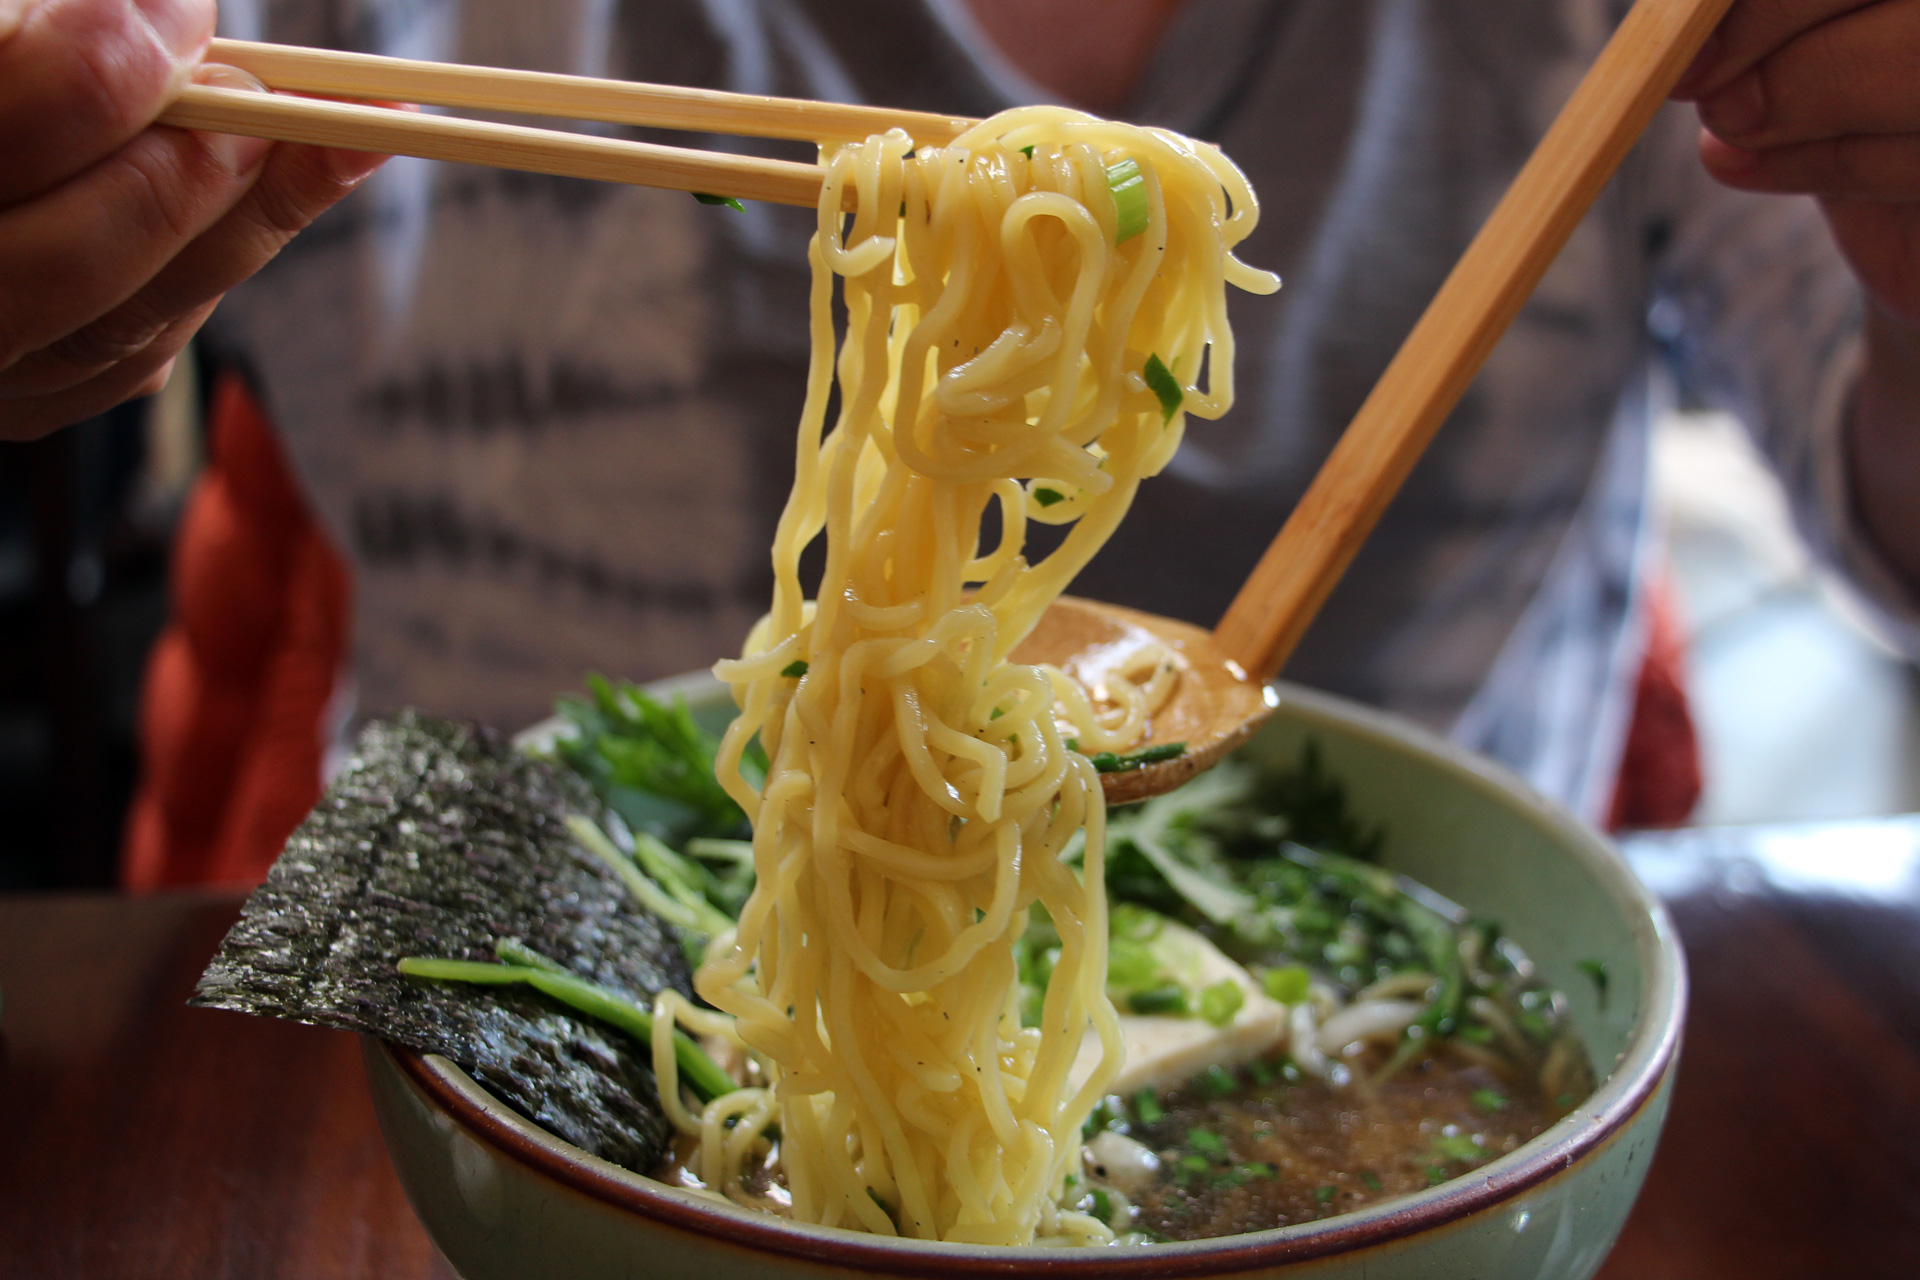 The noodles from the vegetarian shoyu ramen